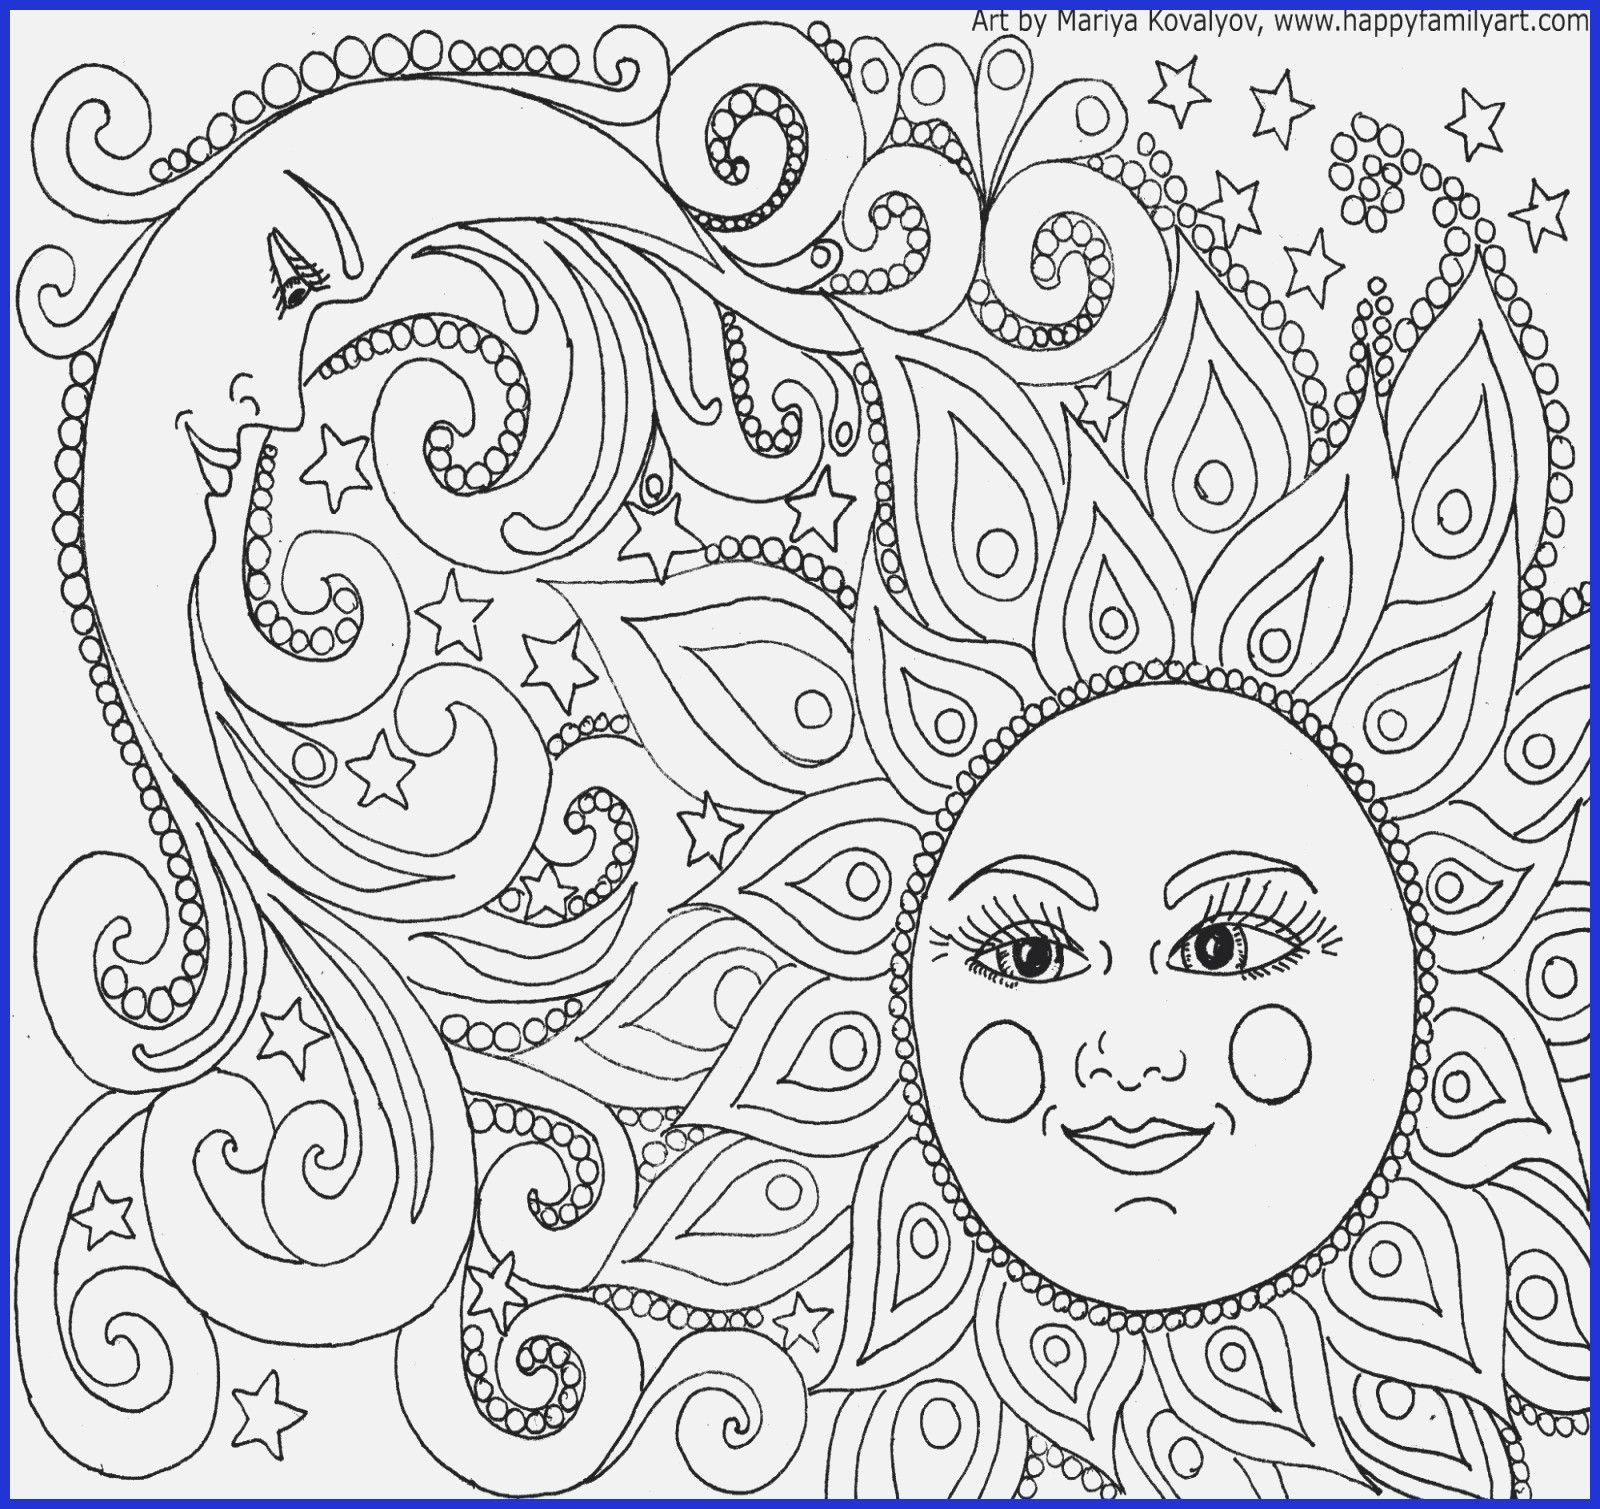 Adult Coloring Pages Online Coloring Pages For Adults Online Cute ...